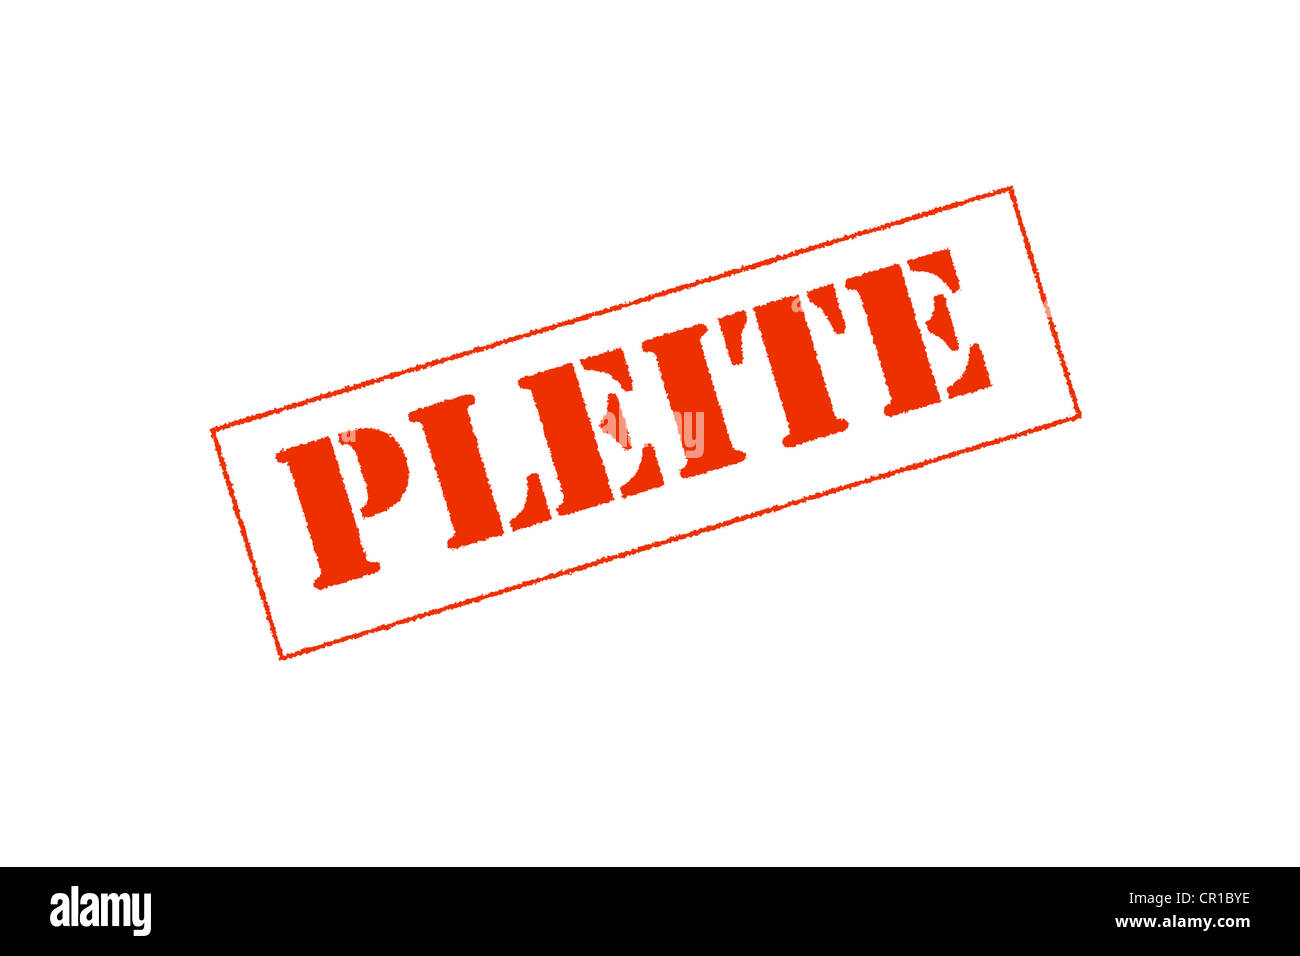 Word 'Pleite', German for bankruptcy - Stock Image